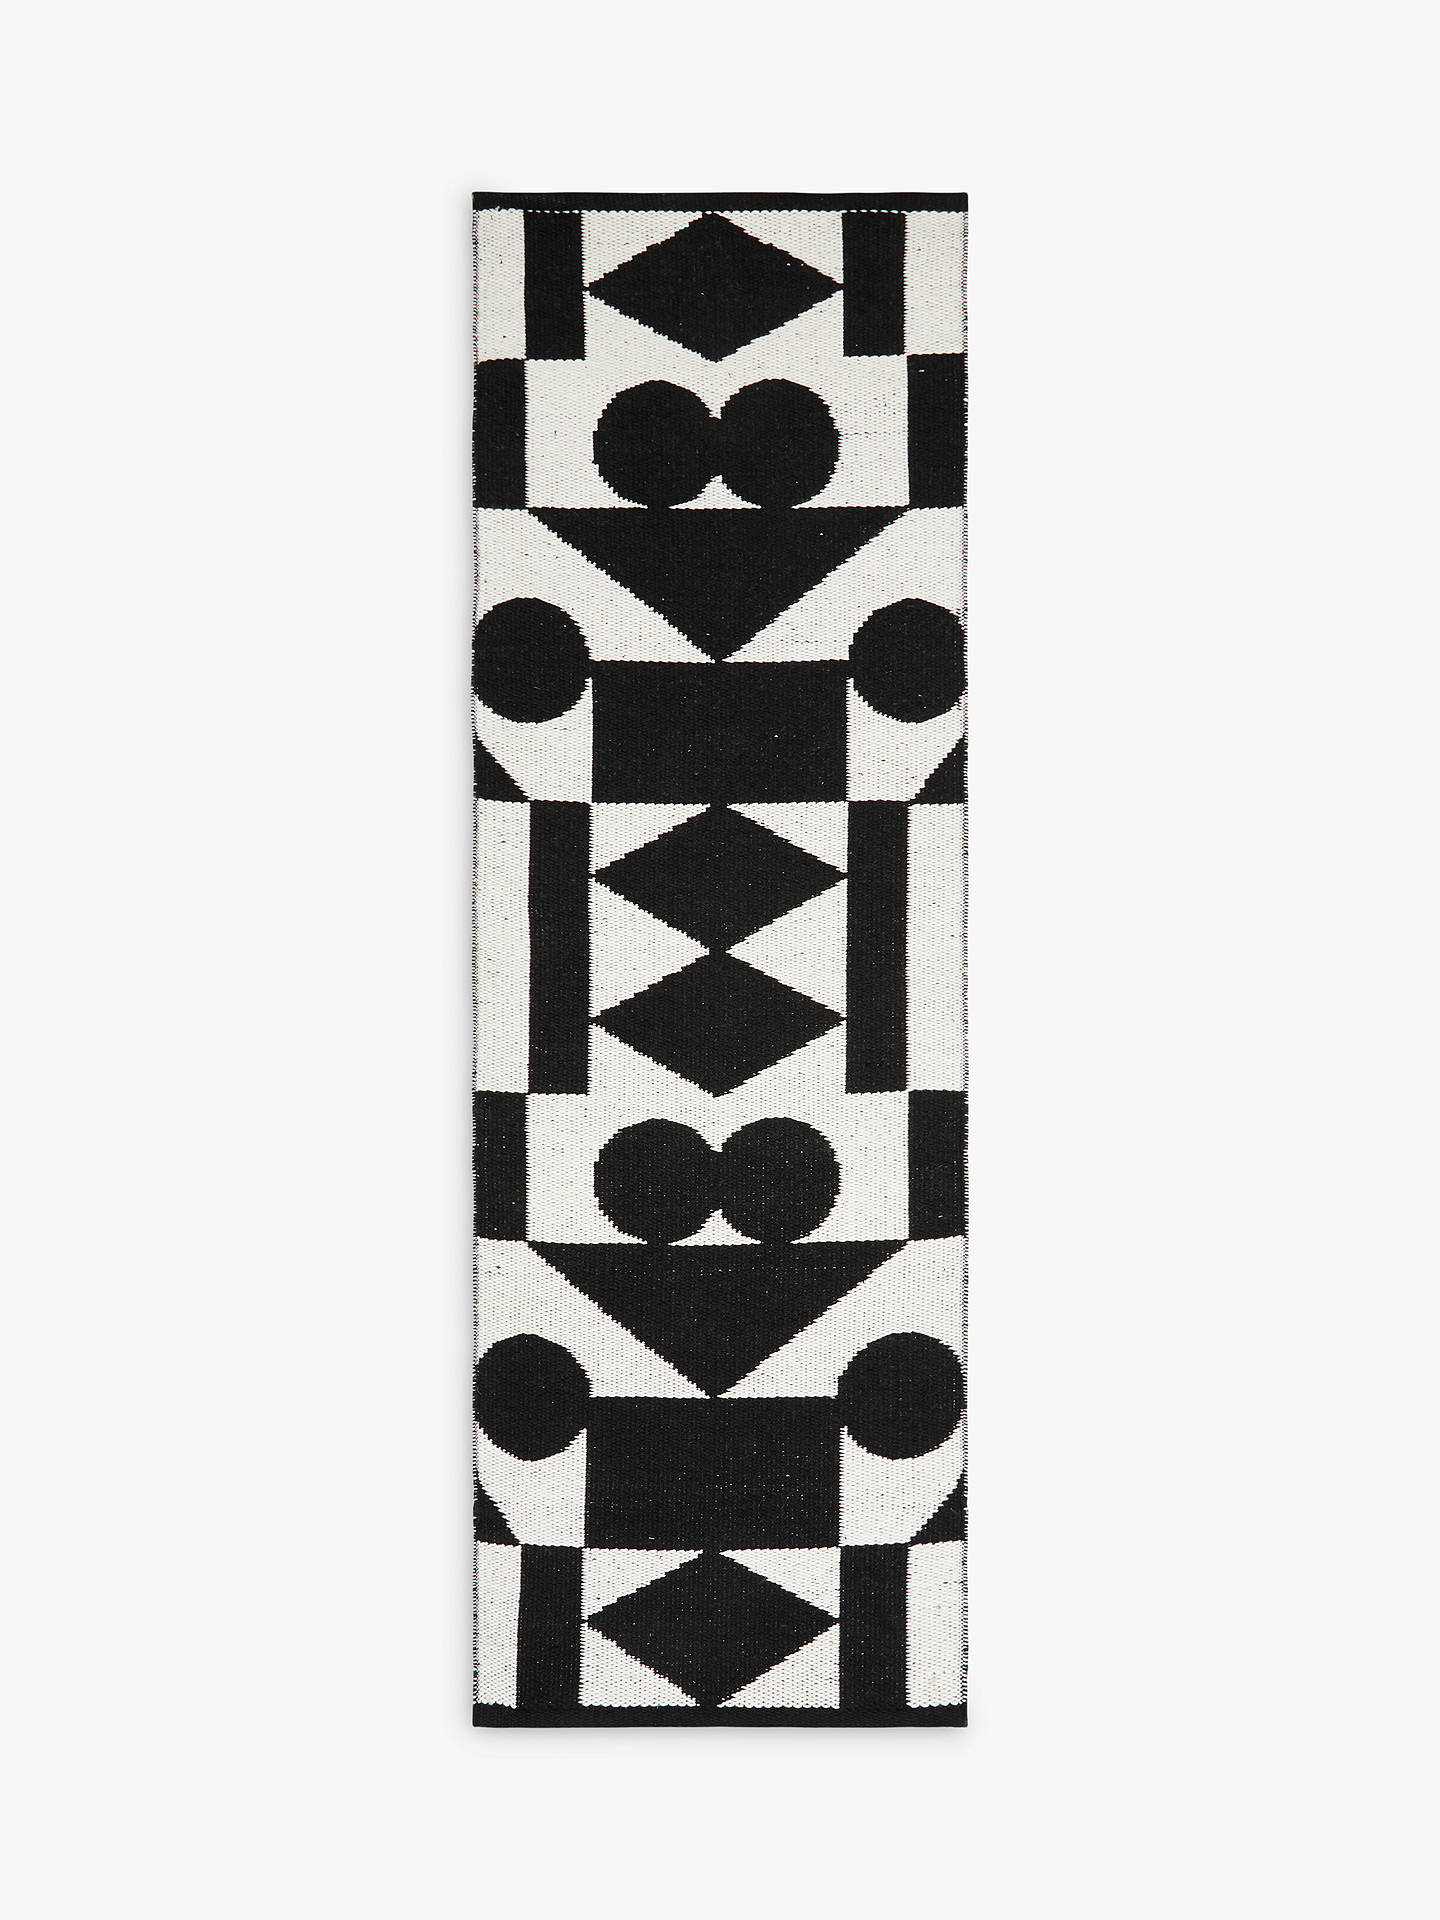 Patternity John Lewis Ritual Reflect Runner Rug Black White At